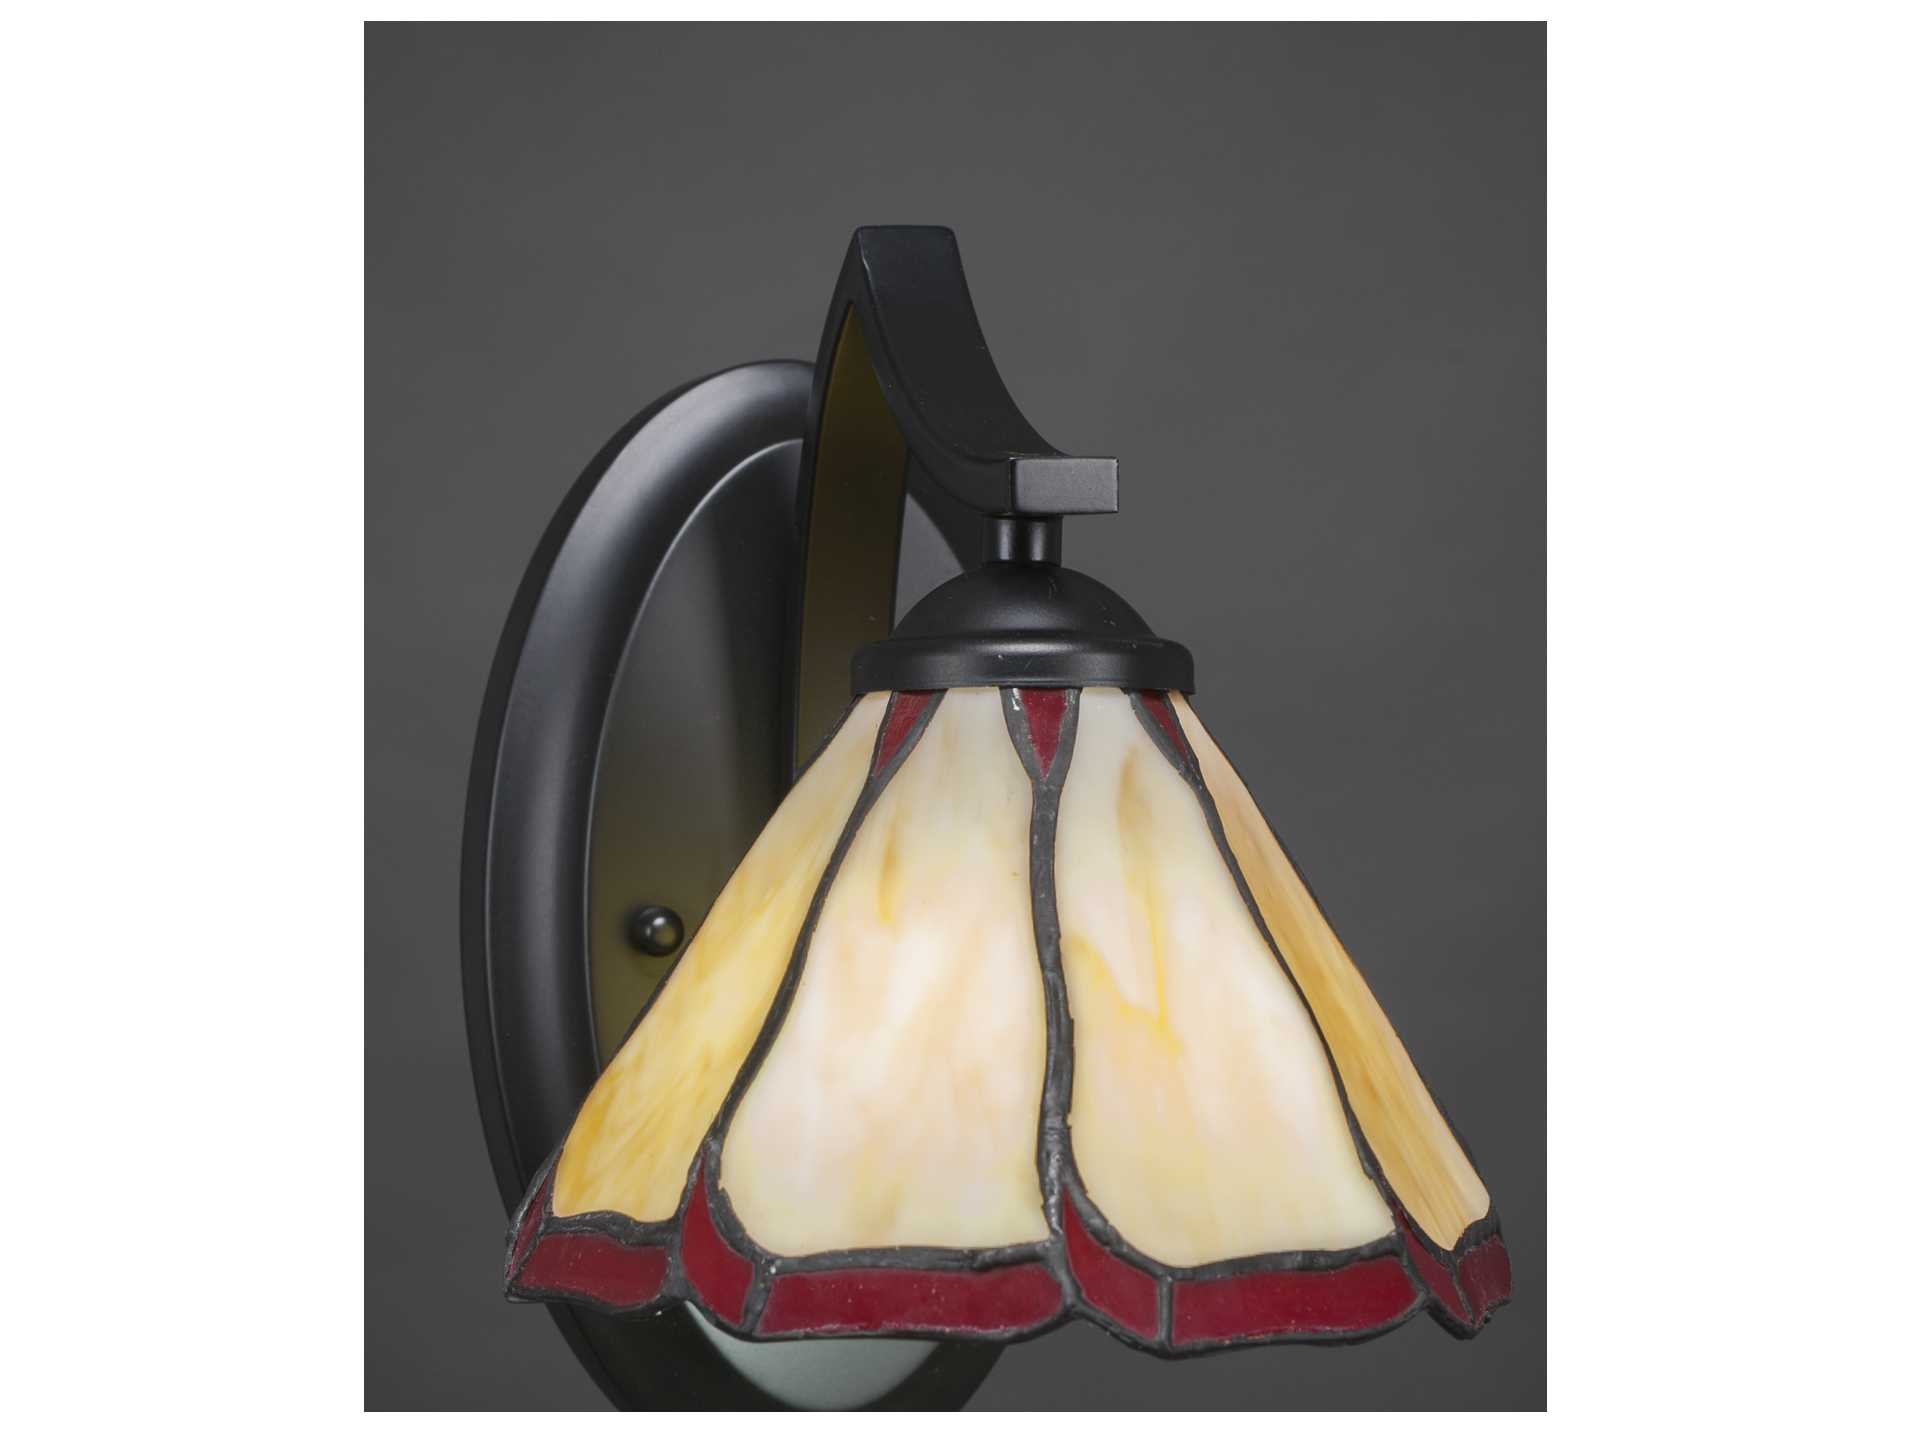 Toltec Lighting Zilo Matte Black with Honey & Burgundy Flair Tiffany Glass Wall Sconce